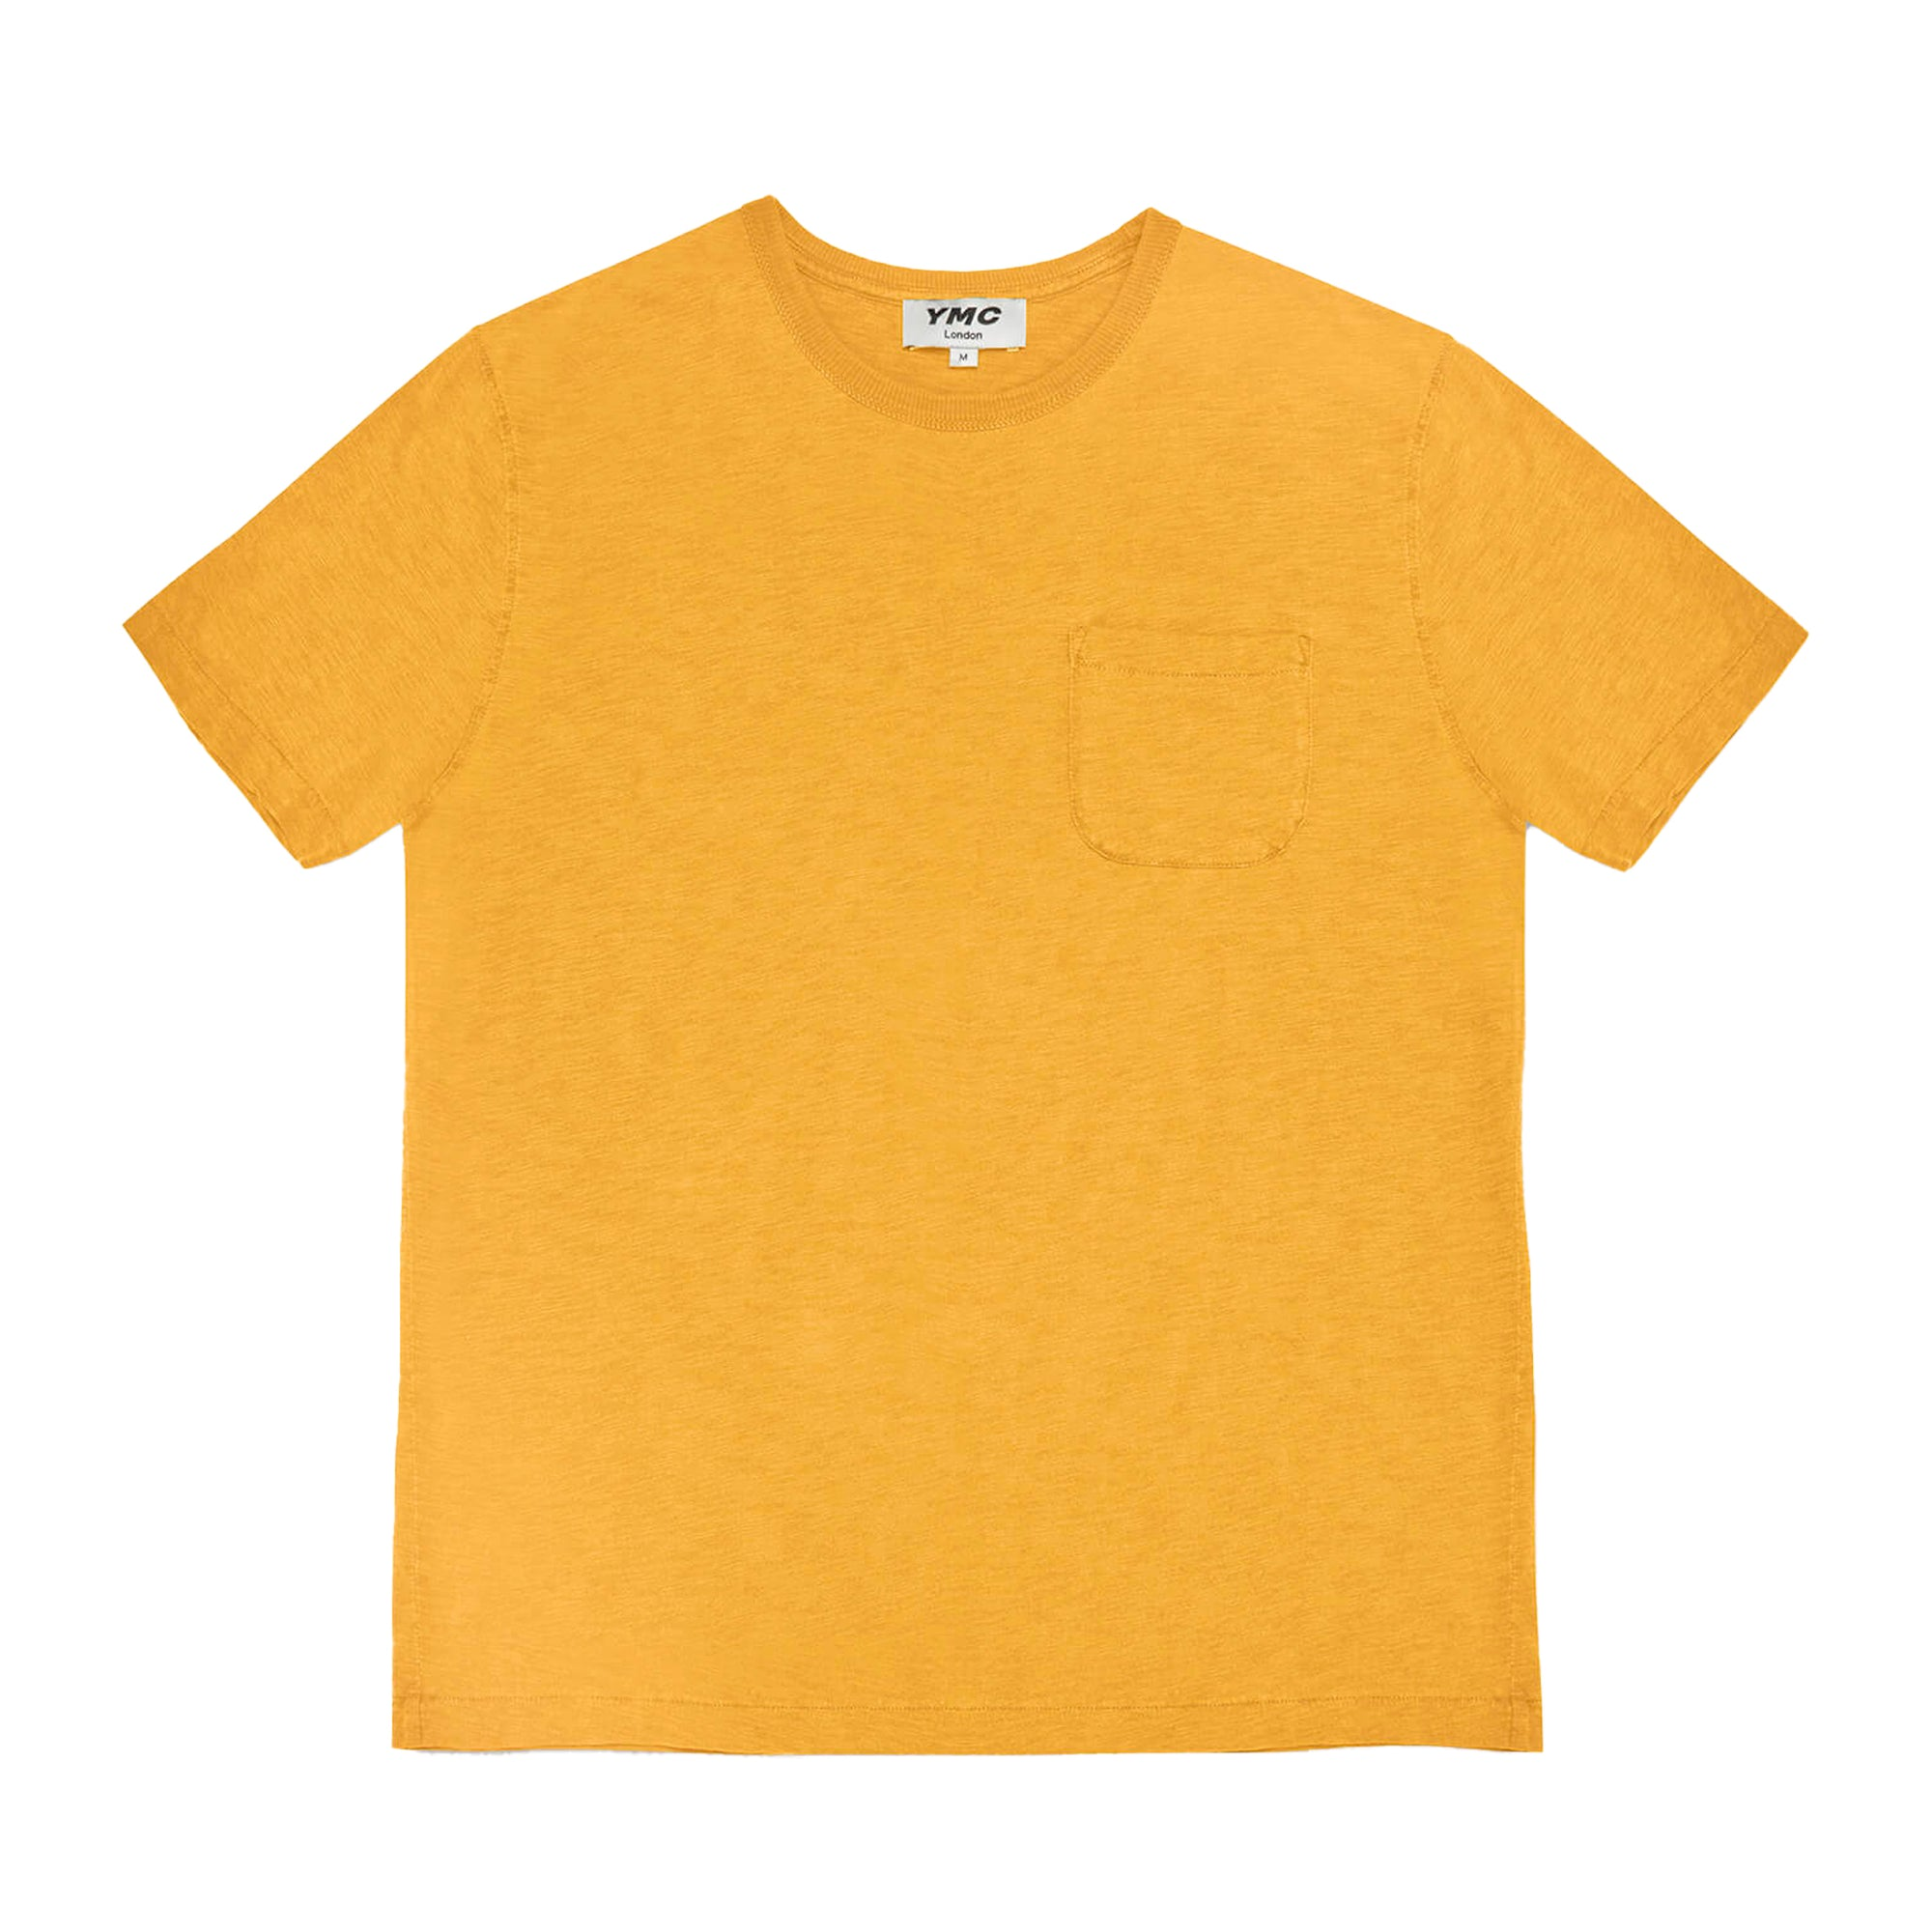 YMC Wild Ones Pocket T-Shirt: Yellow - The Union Project